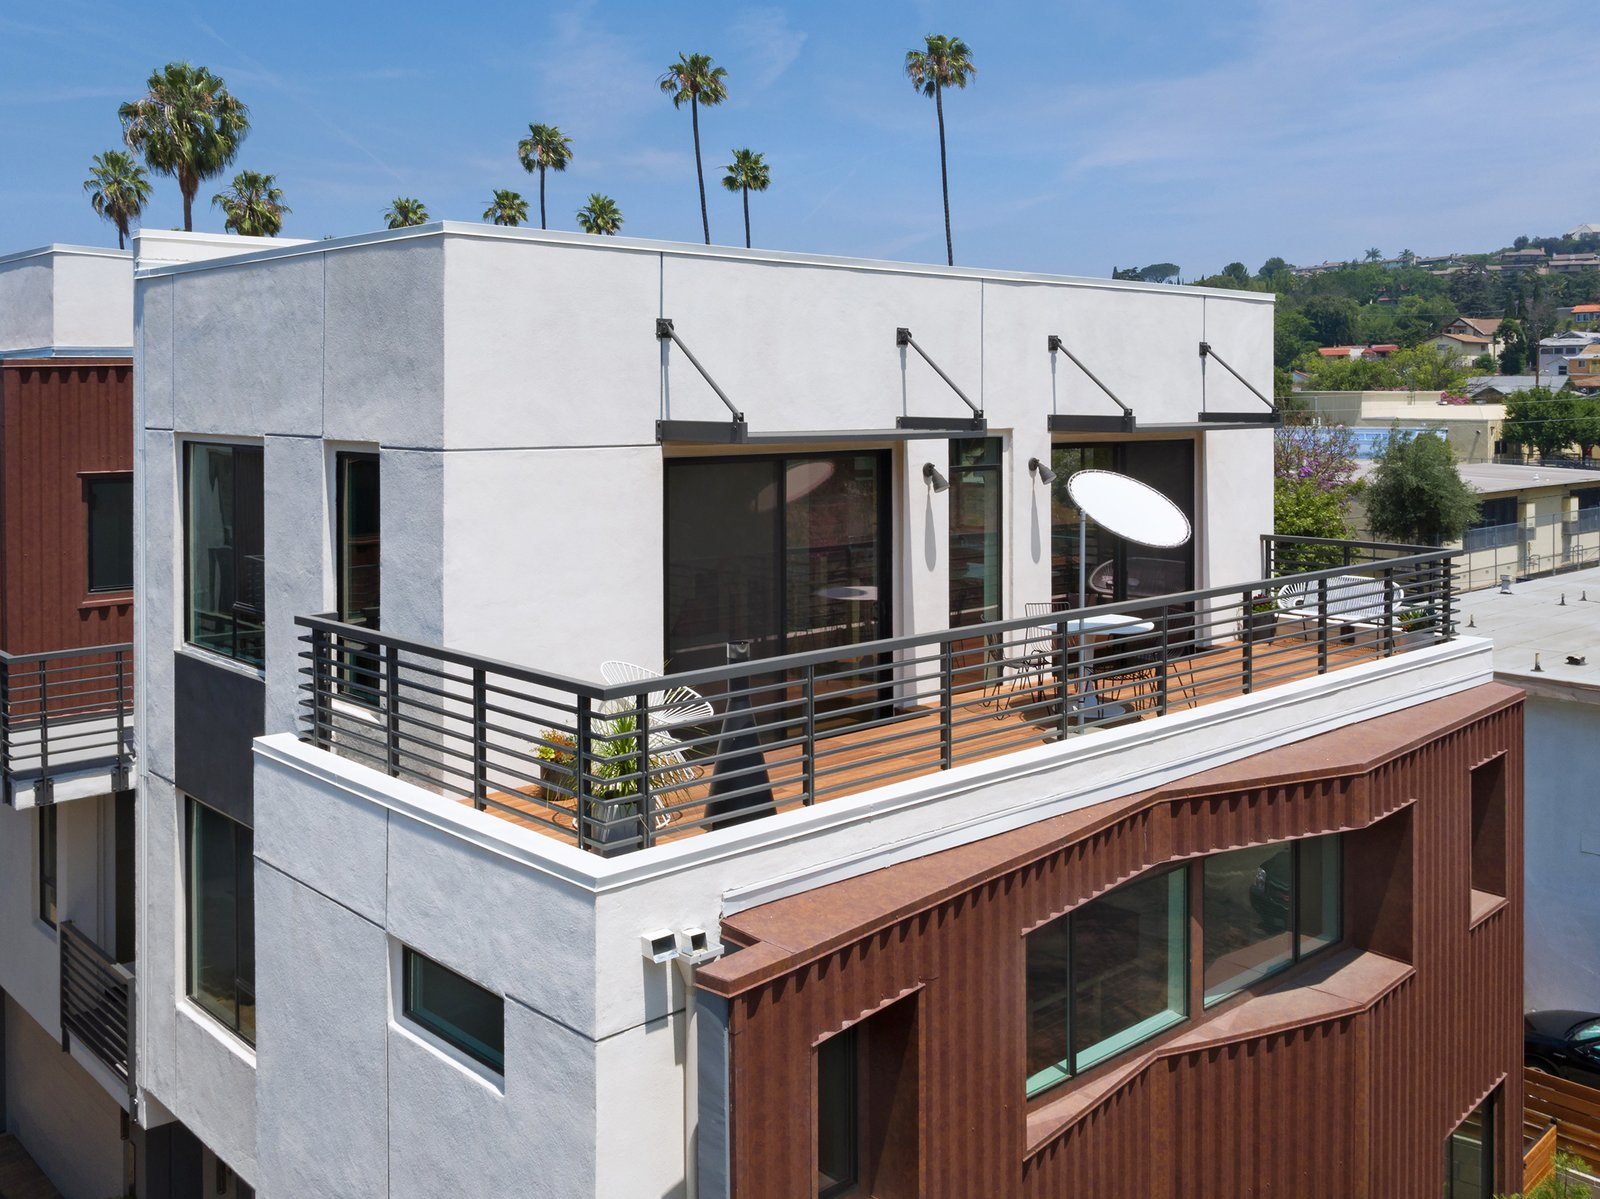 Palm trees and hillsides are among the views from large outdoor decks. Tagged: House, Stucco Siding Material, Metal Siding Material, Large Patio, Porch, Deck, Wood Patio, Porch, Deck, Concrete Patio, Porch, Deck, Metal Fences, Wall, Rooftop, Doors, Exterior, and Sliding Door Type.  COVO by KTGY Architecture + Planning